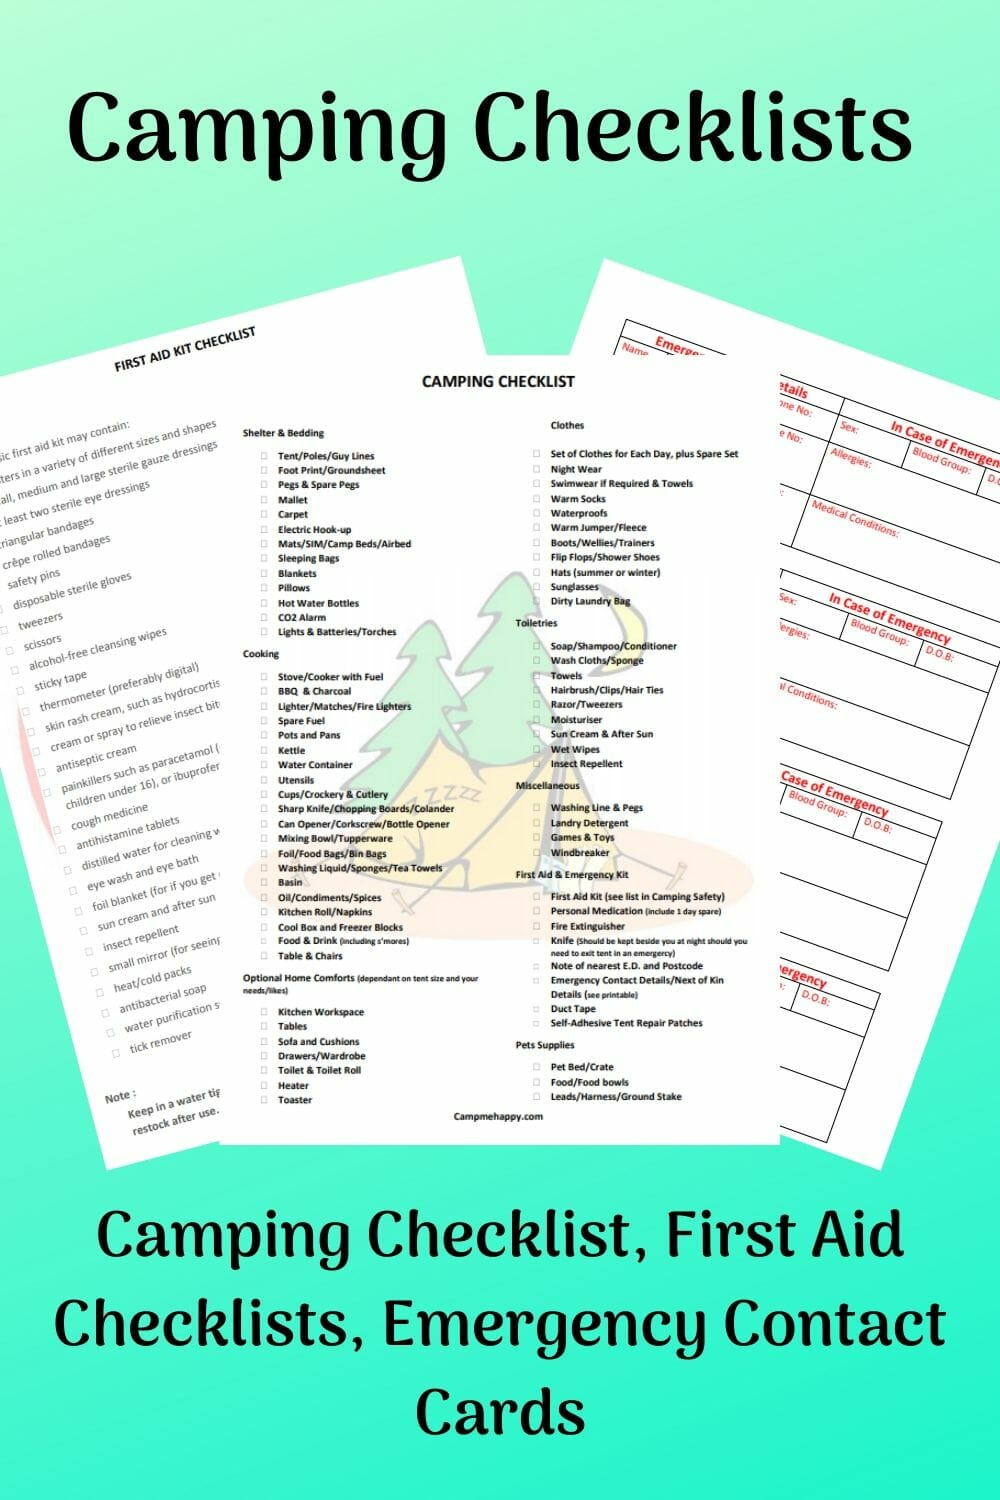 Camping Checklists